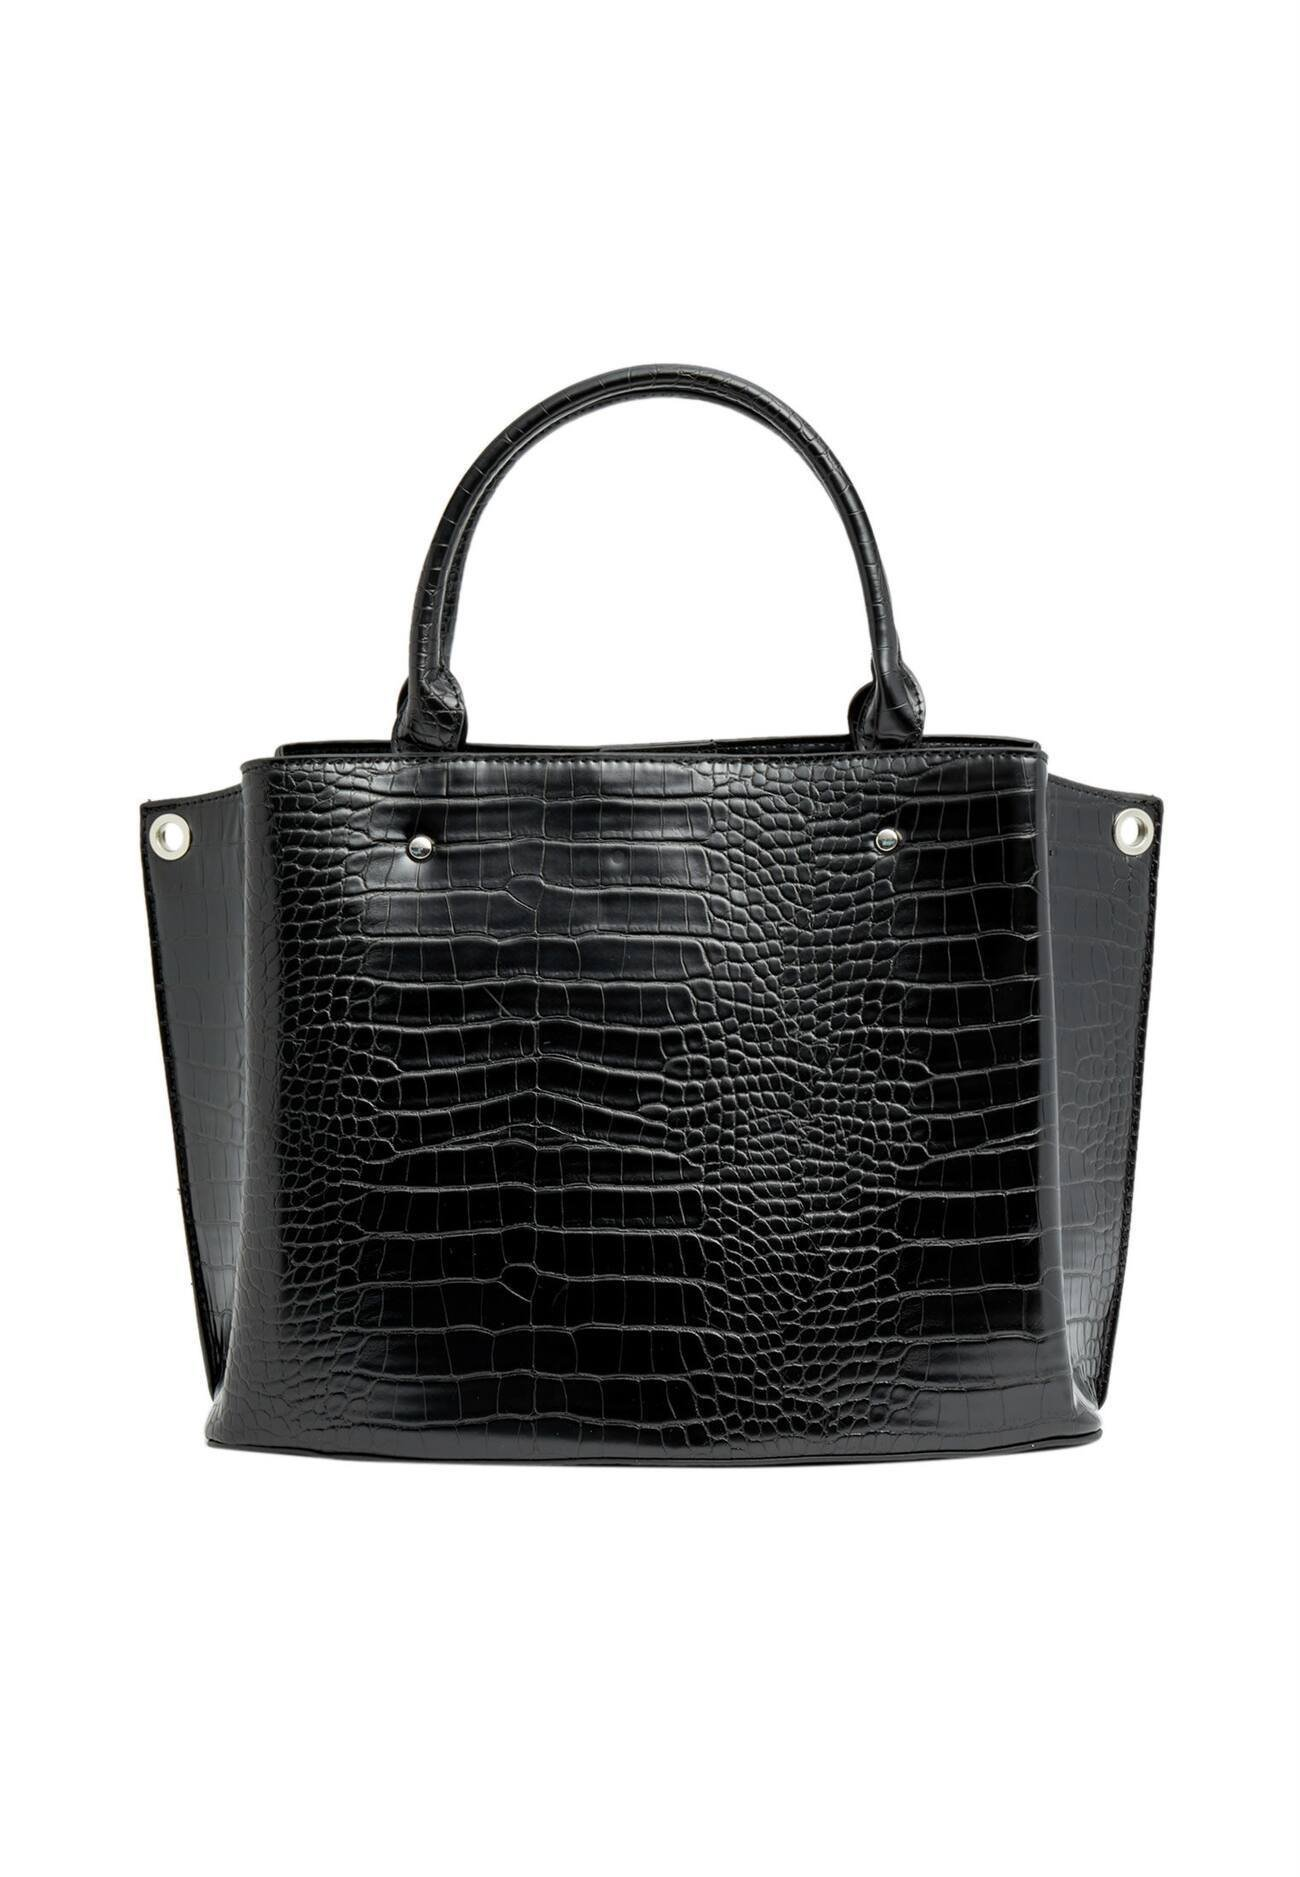 Stradivarius Shopping Bag - Black/schwarz